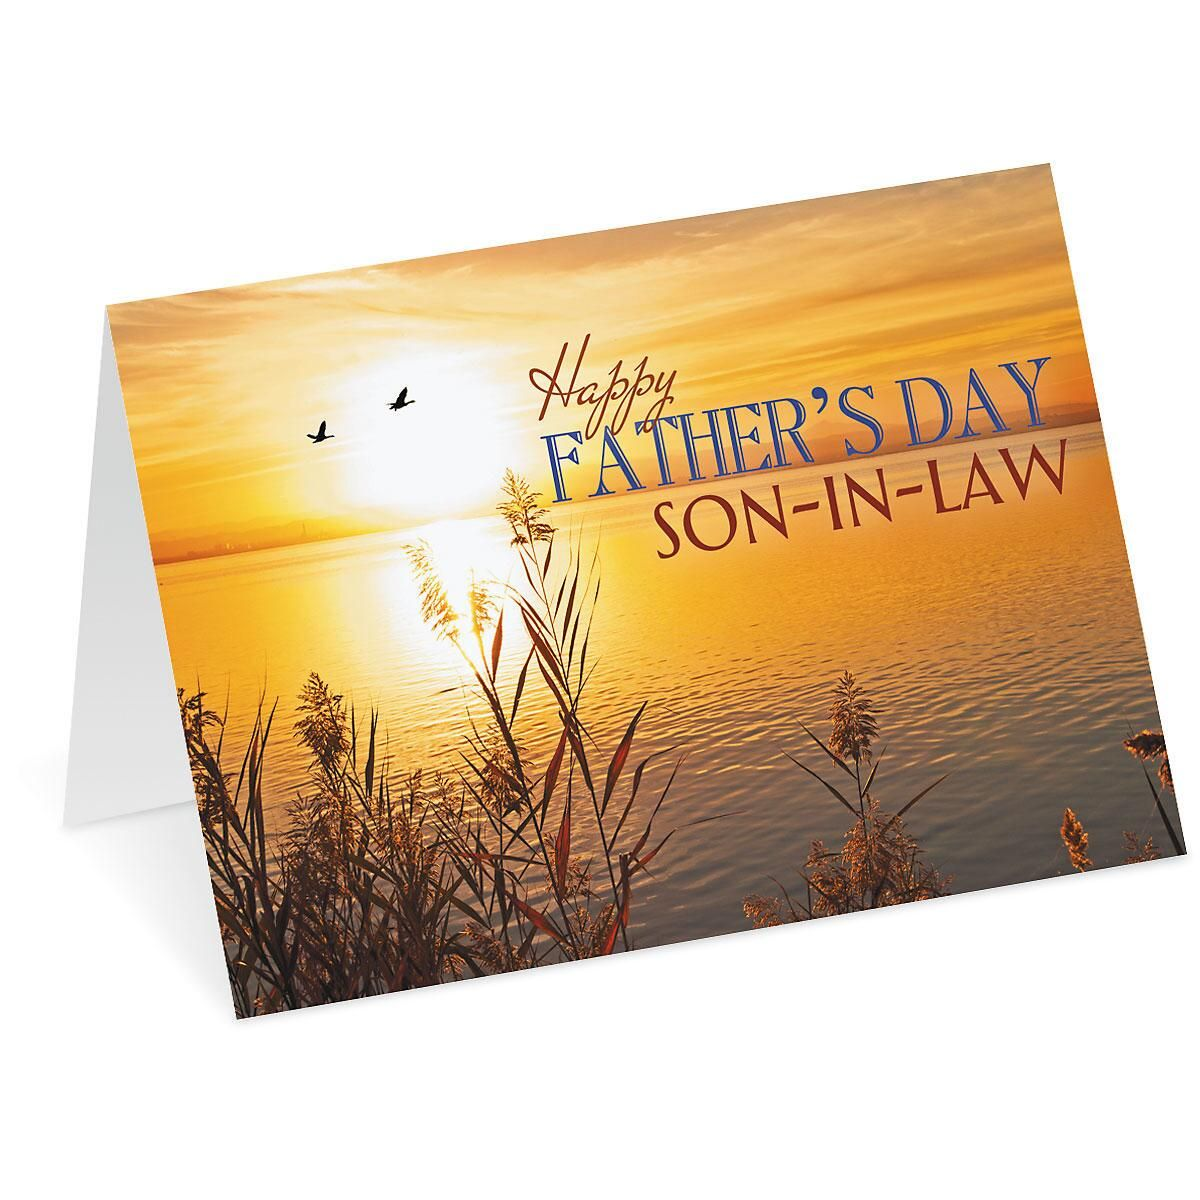 Sunrise Son-in-Law Father's Day Card